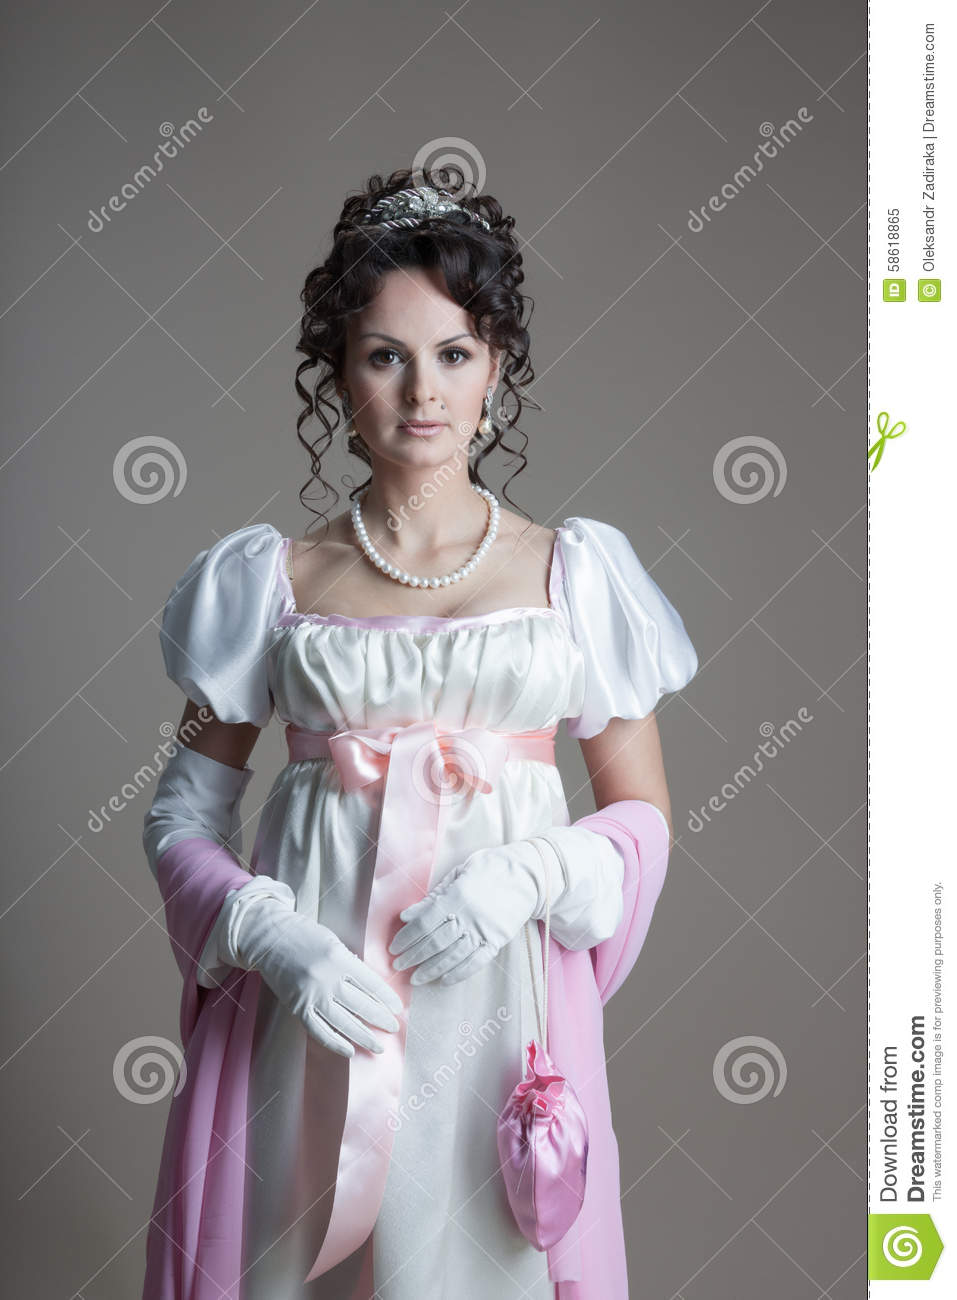 History of fashion design 19th century stock photo for History of fashion designers